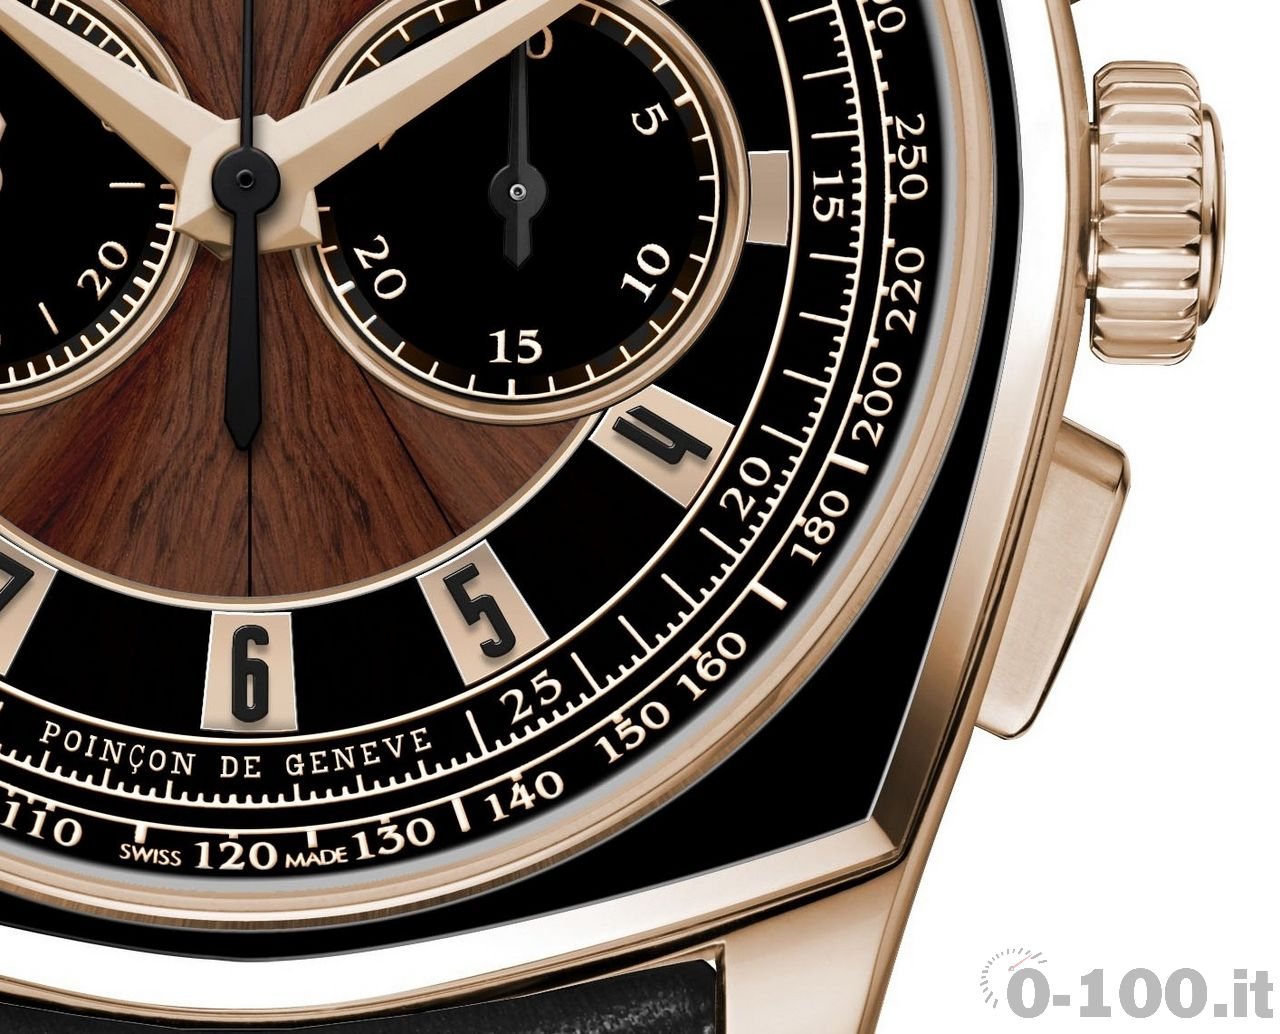 roger-dubuis-monegasque-club-limited-edition_0-1005